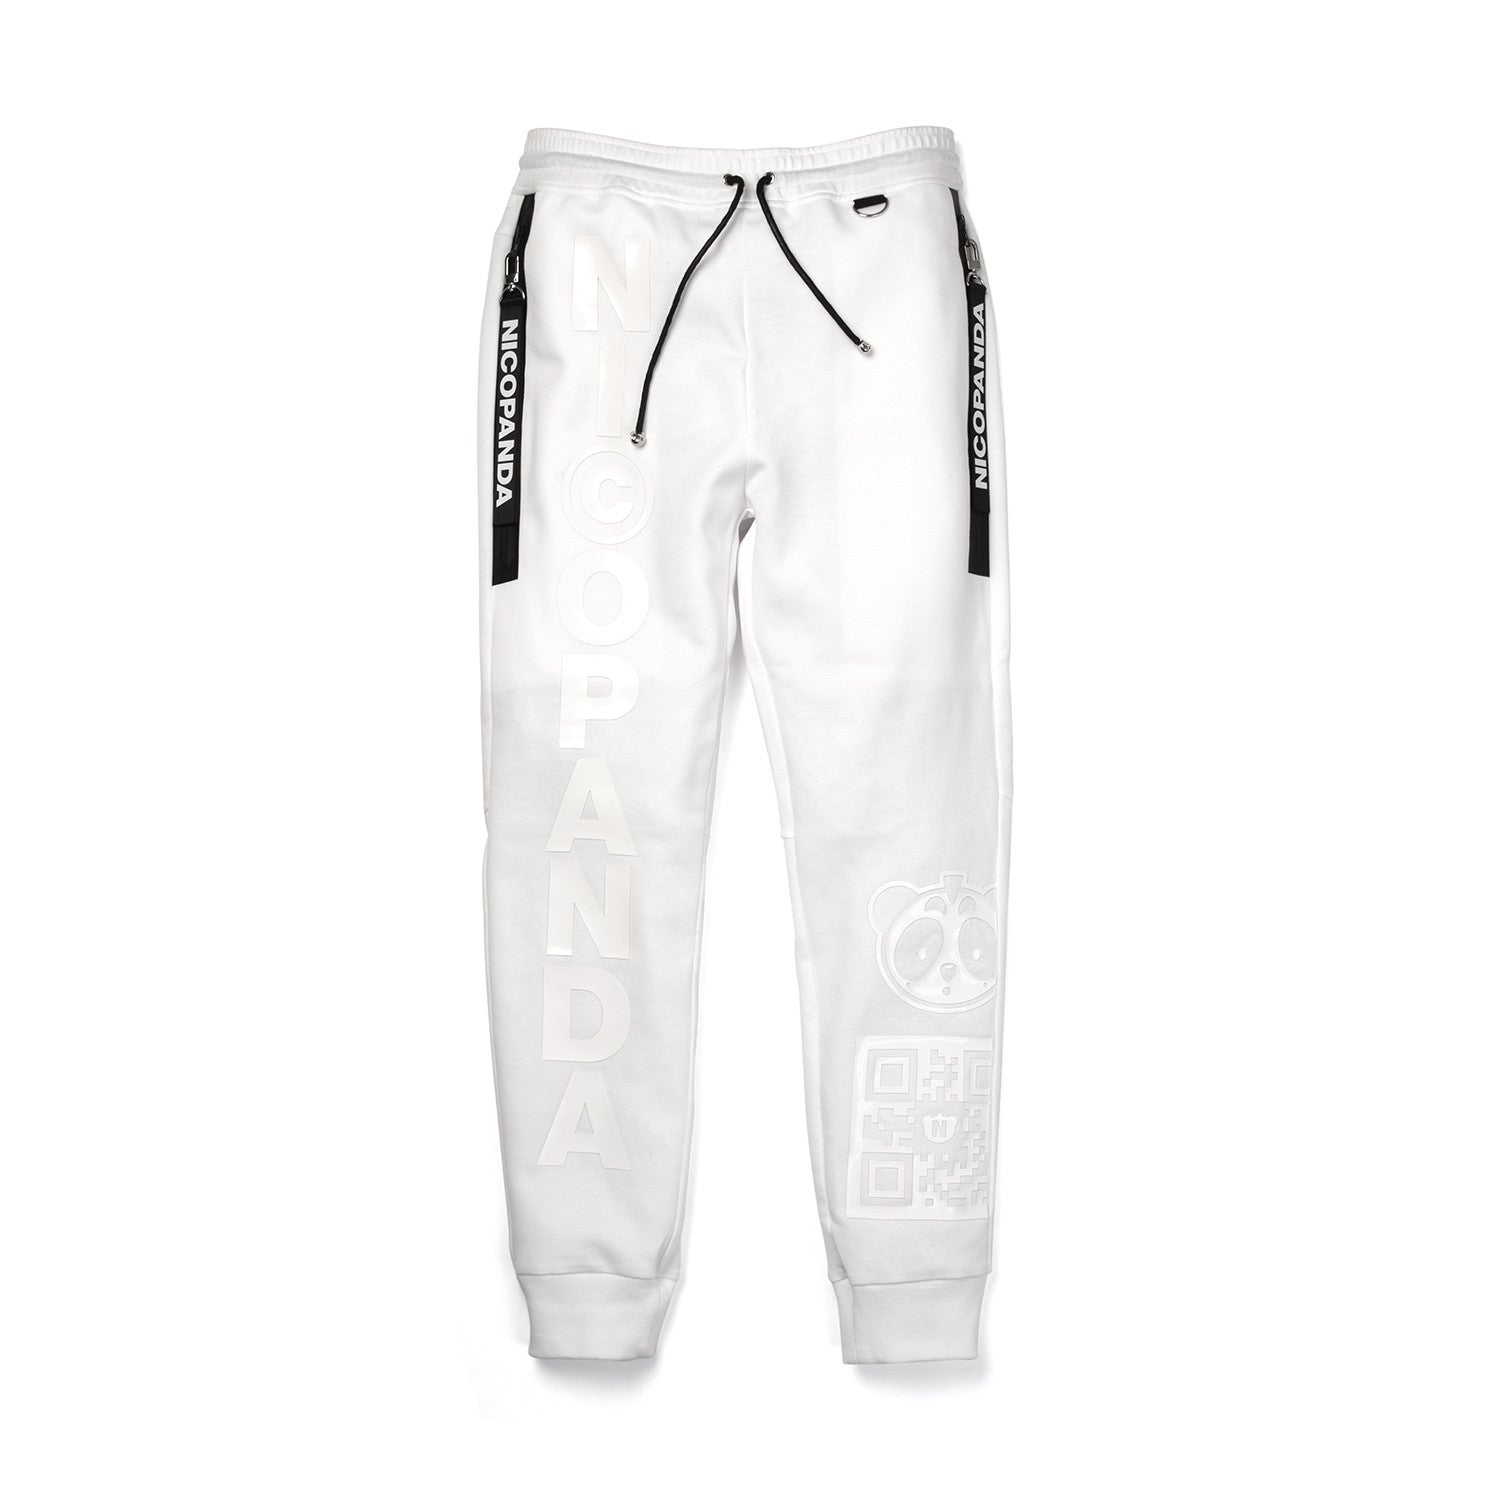 NicoPanda Knitted Panda Nation Sweatpants White